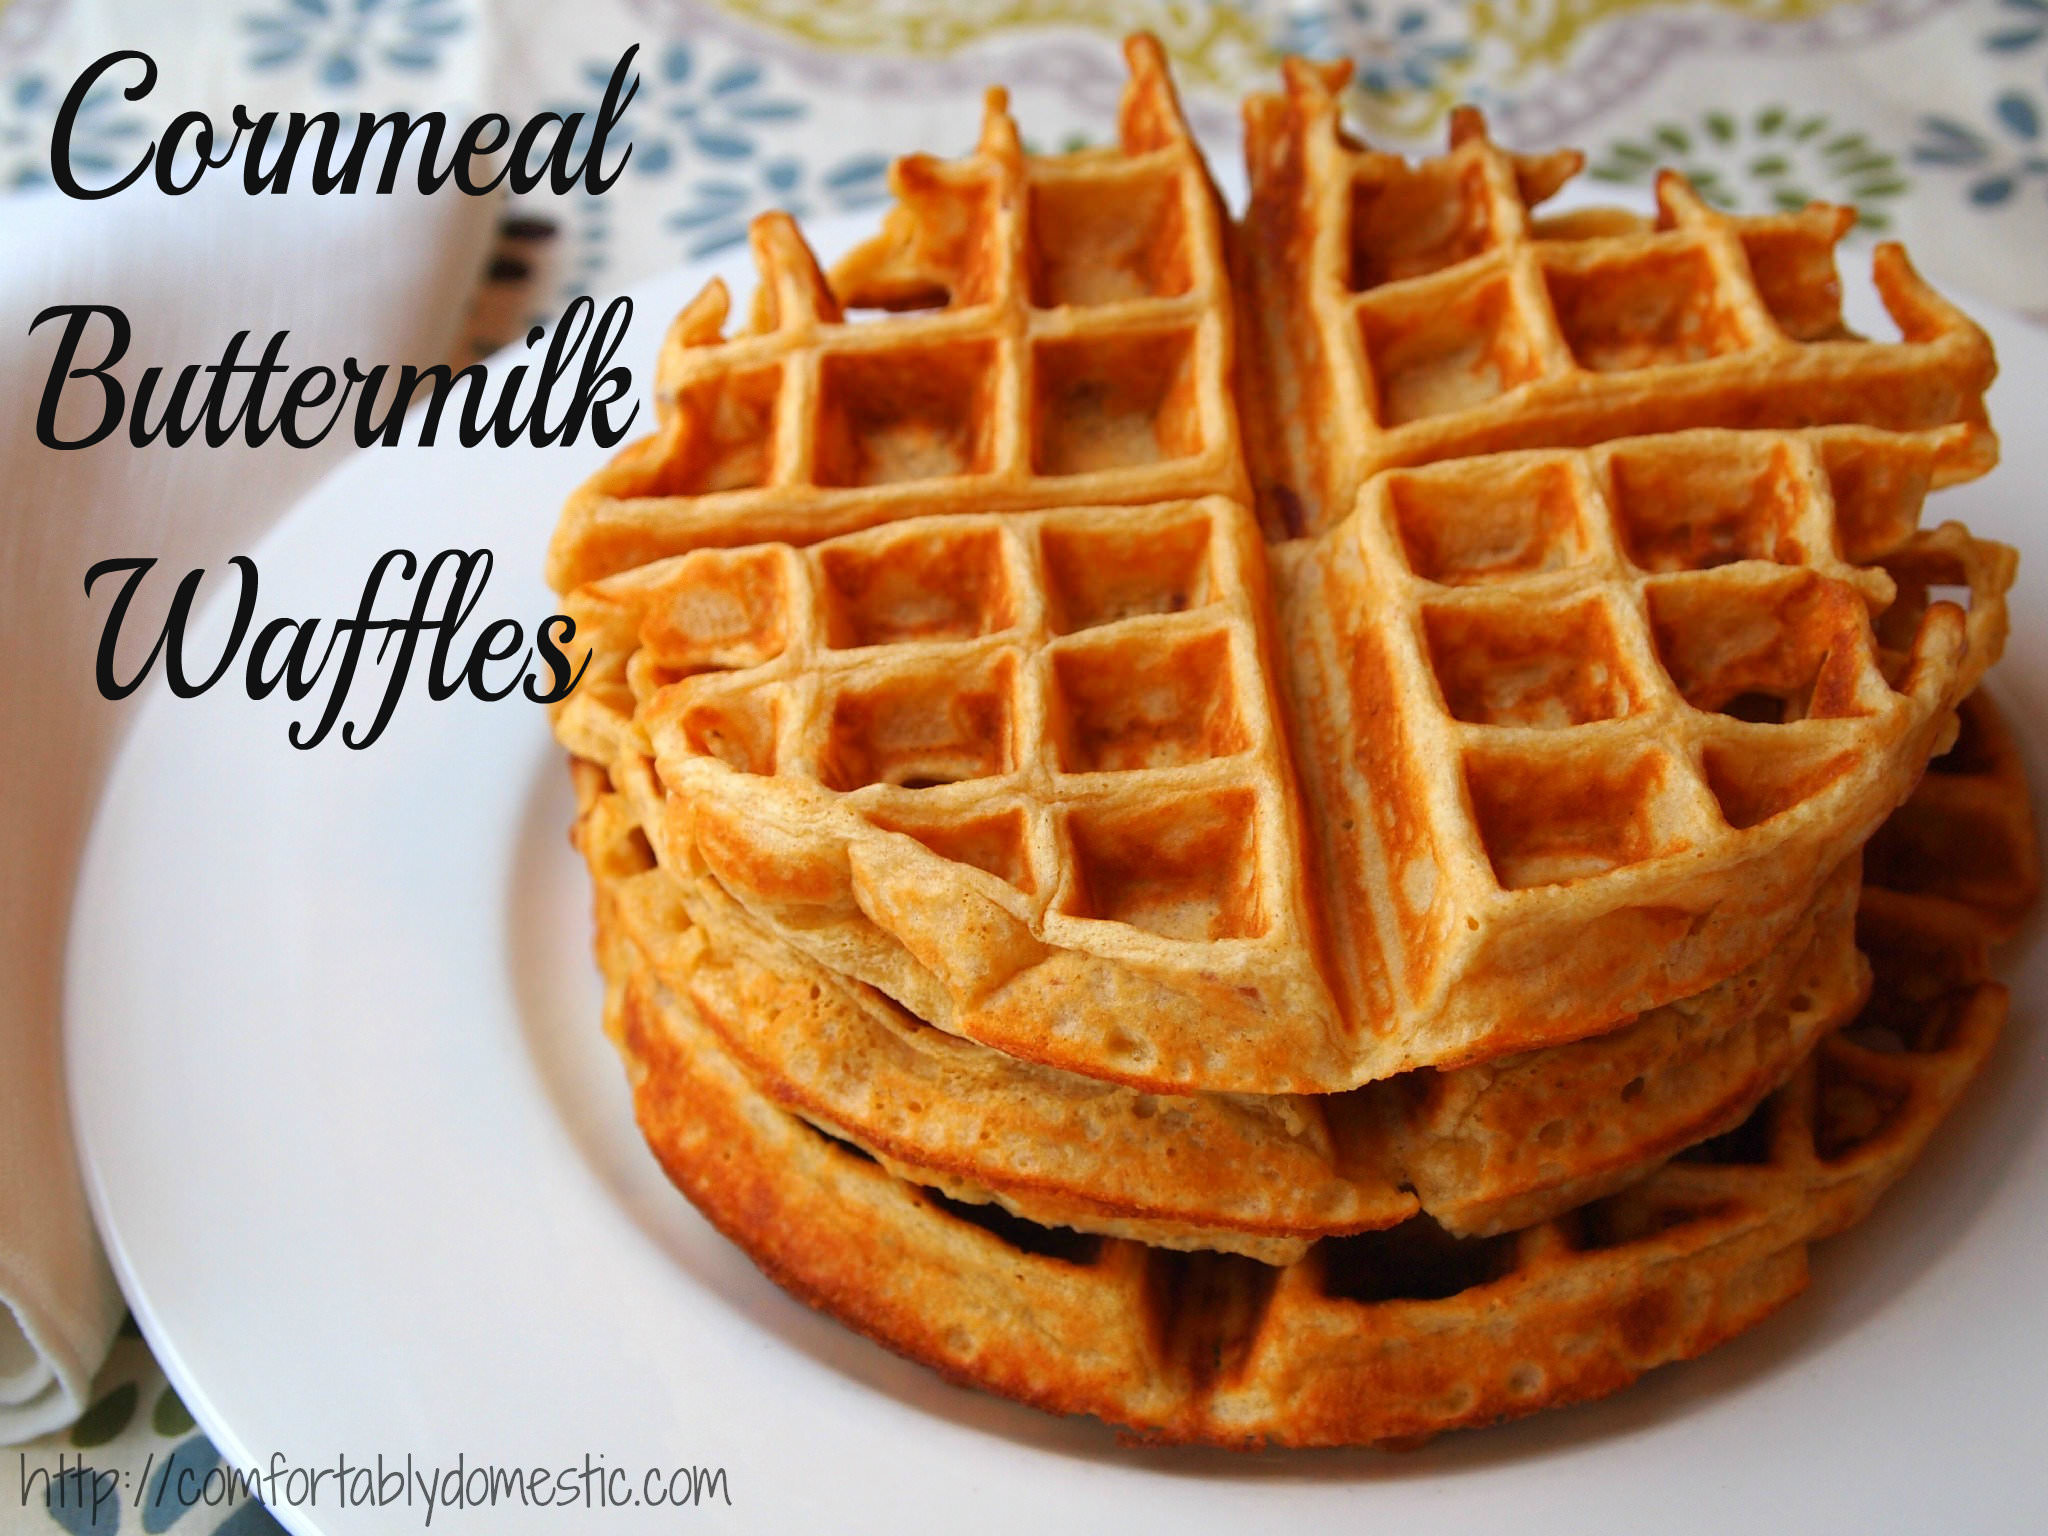 Cornmeal Buttermilk Waffles | Comfortably Domestic